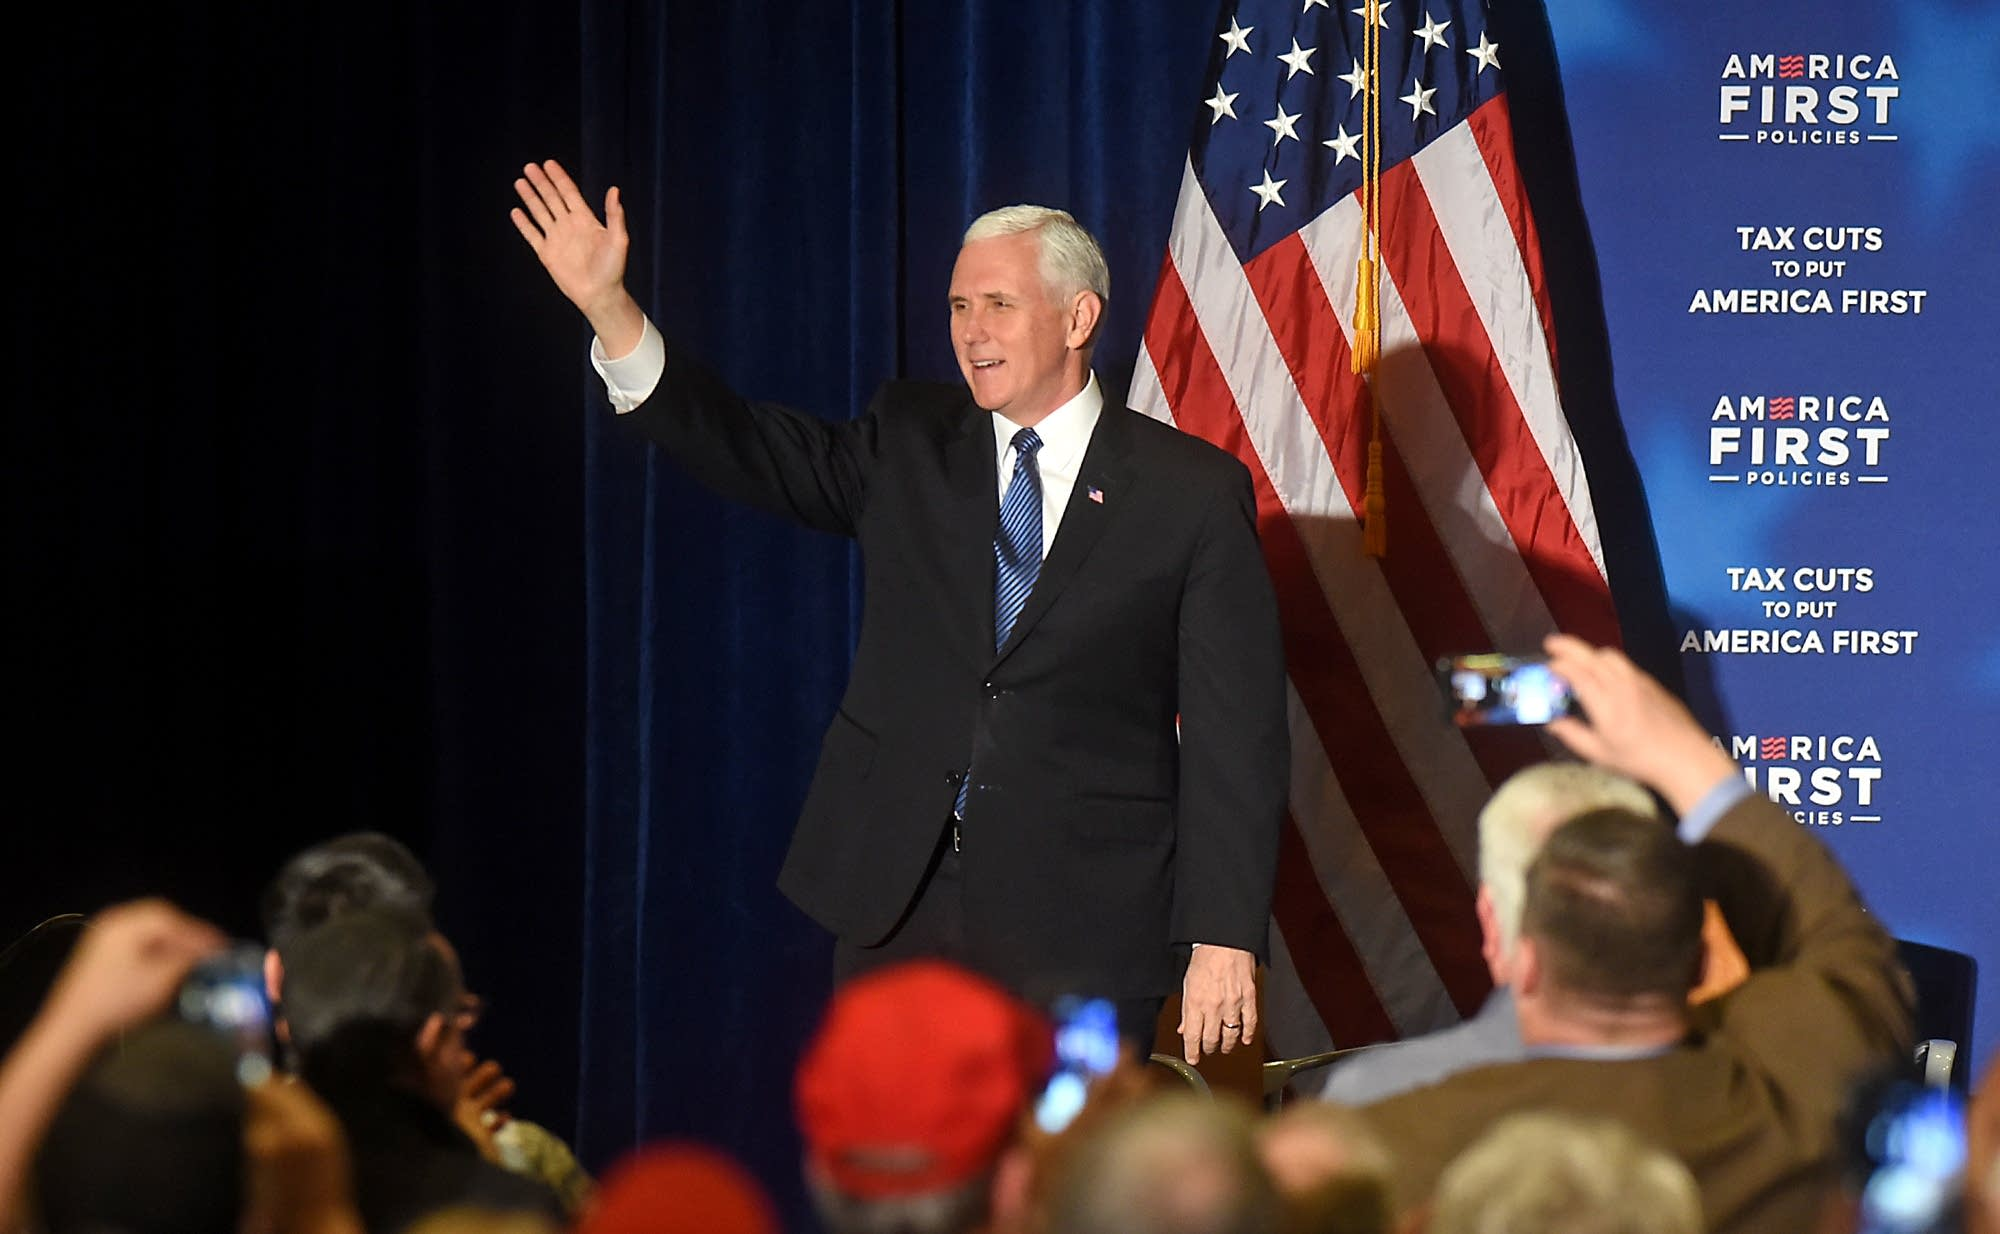 Vice President Mike Pence greets his supporters prior to his remarks.